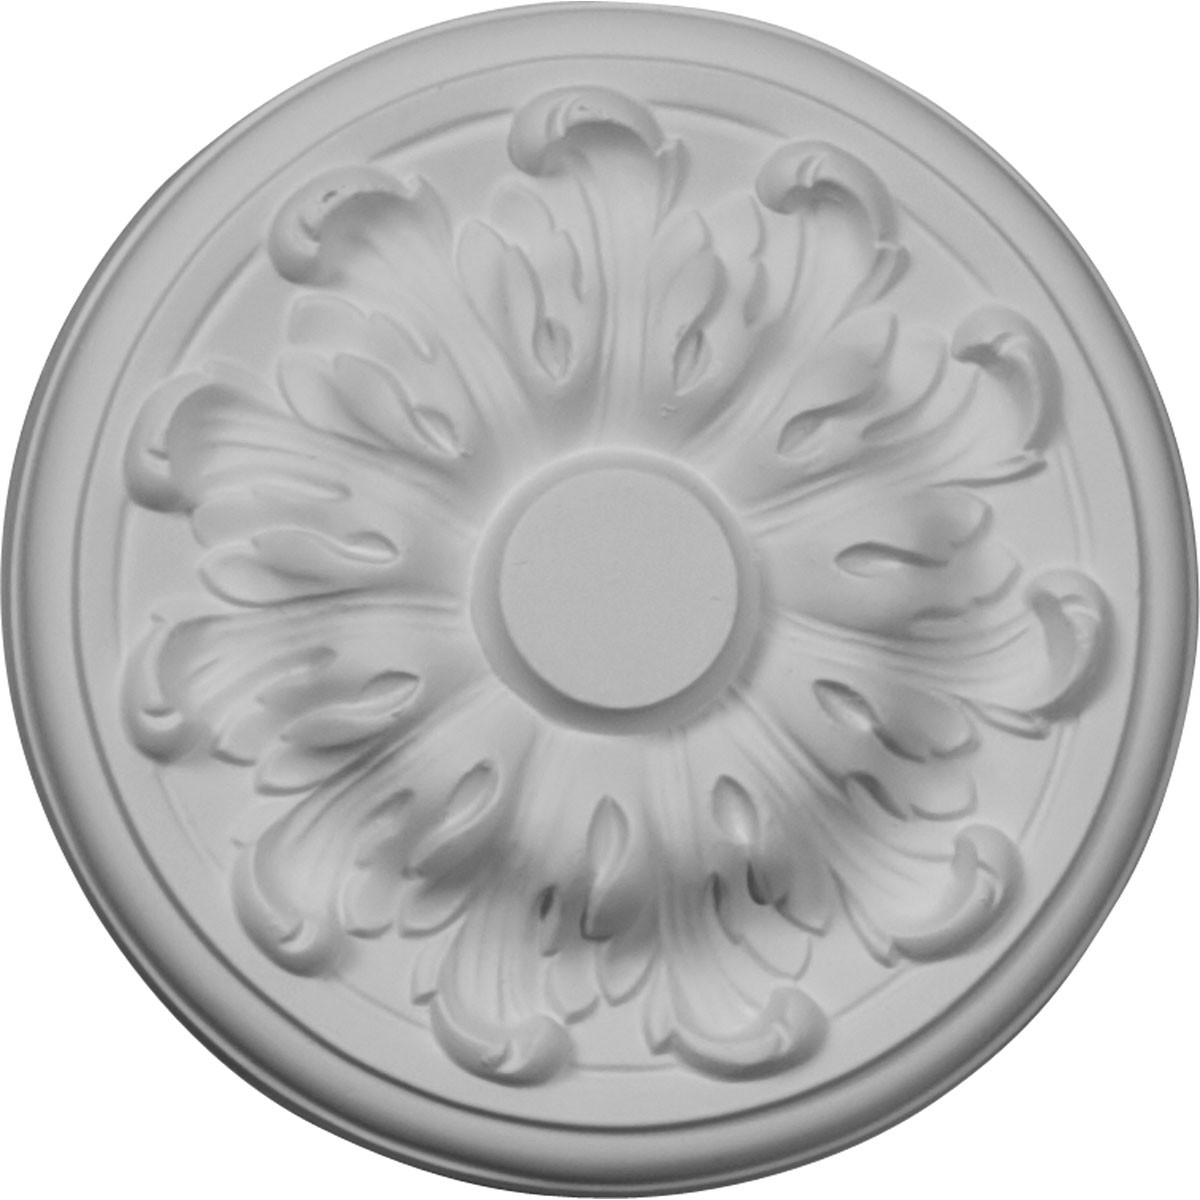 """EM-CM08MU - 7 7/8""""OD x 1/4""""P Millin Ceiling Medallion (Fits Canopies up to 2"""")"""